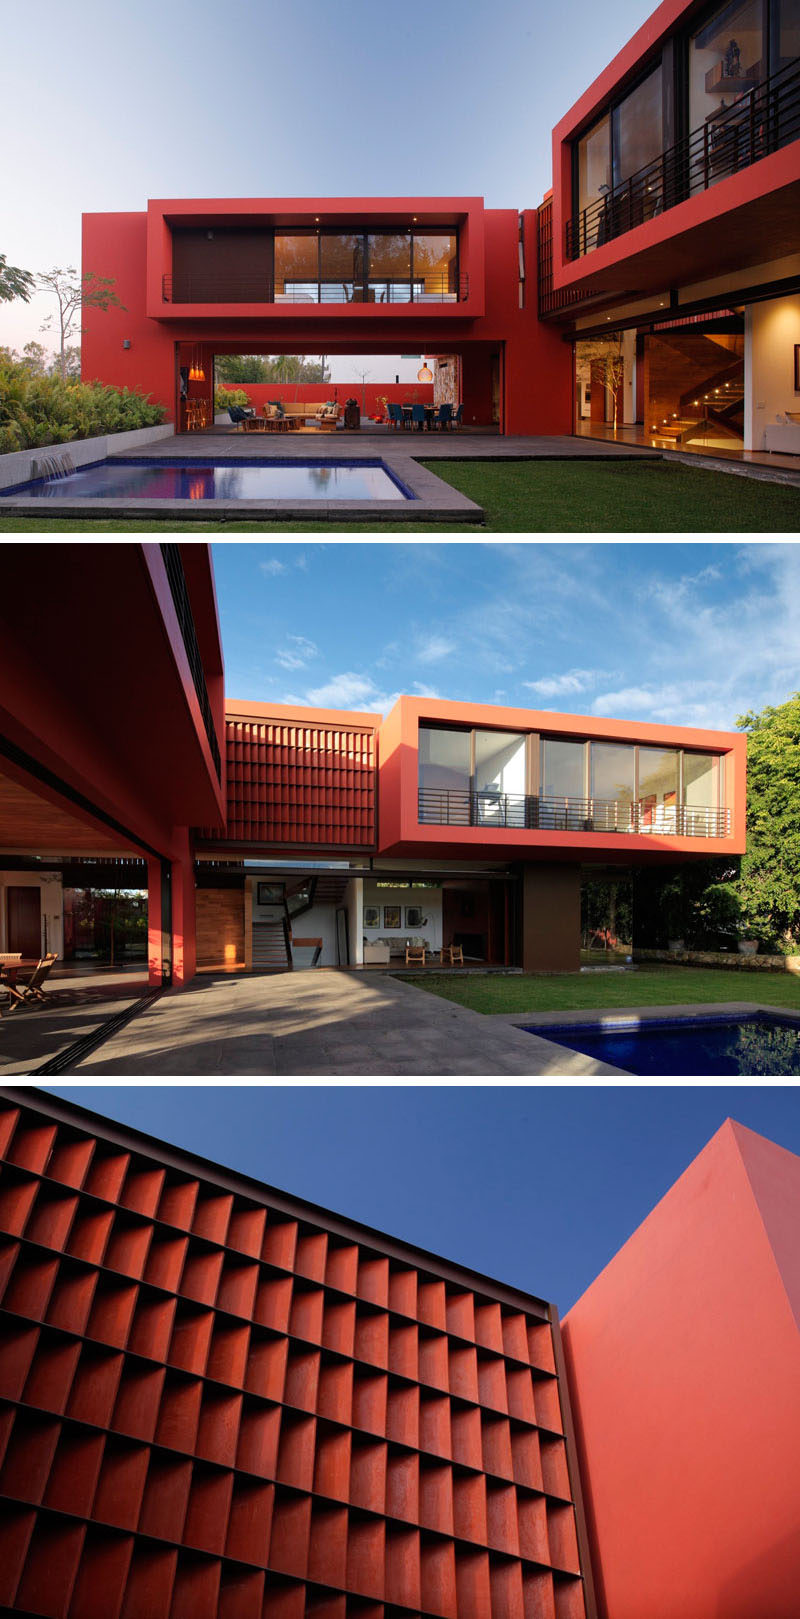 11 Red Houses And Buildings That Aren't Afraid To Make A Statement // Even though the exterior of this house is completely red, the openness of the bottom floor prevents the color from feeling overpowering or overwhelming.